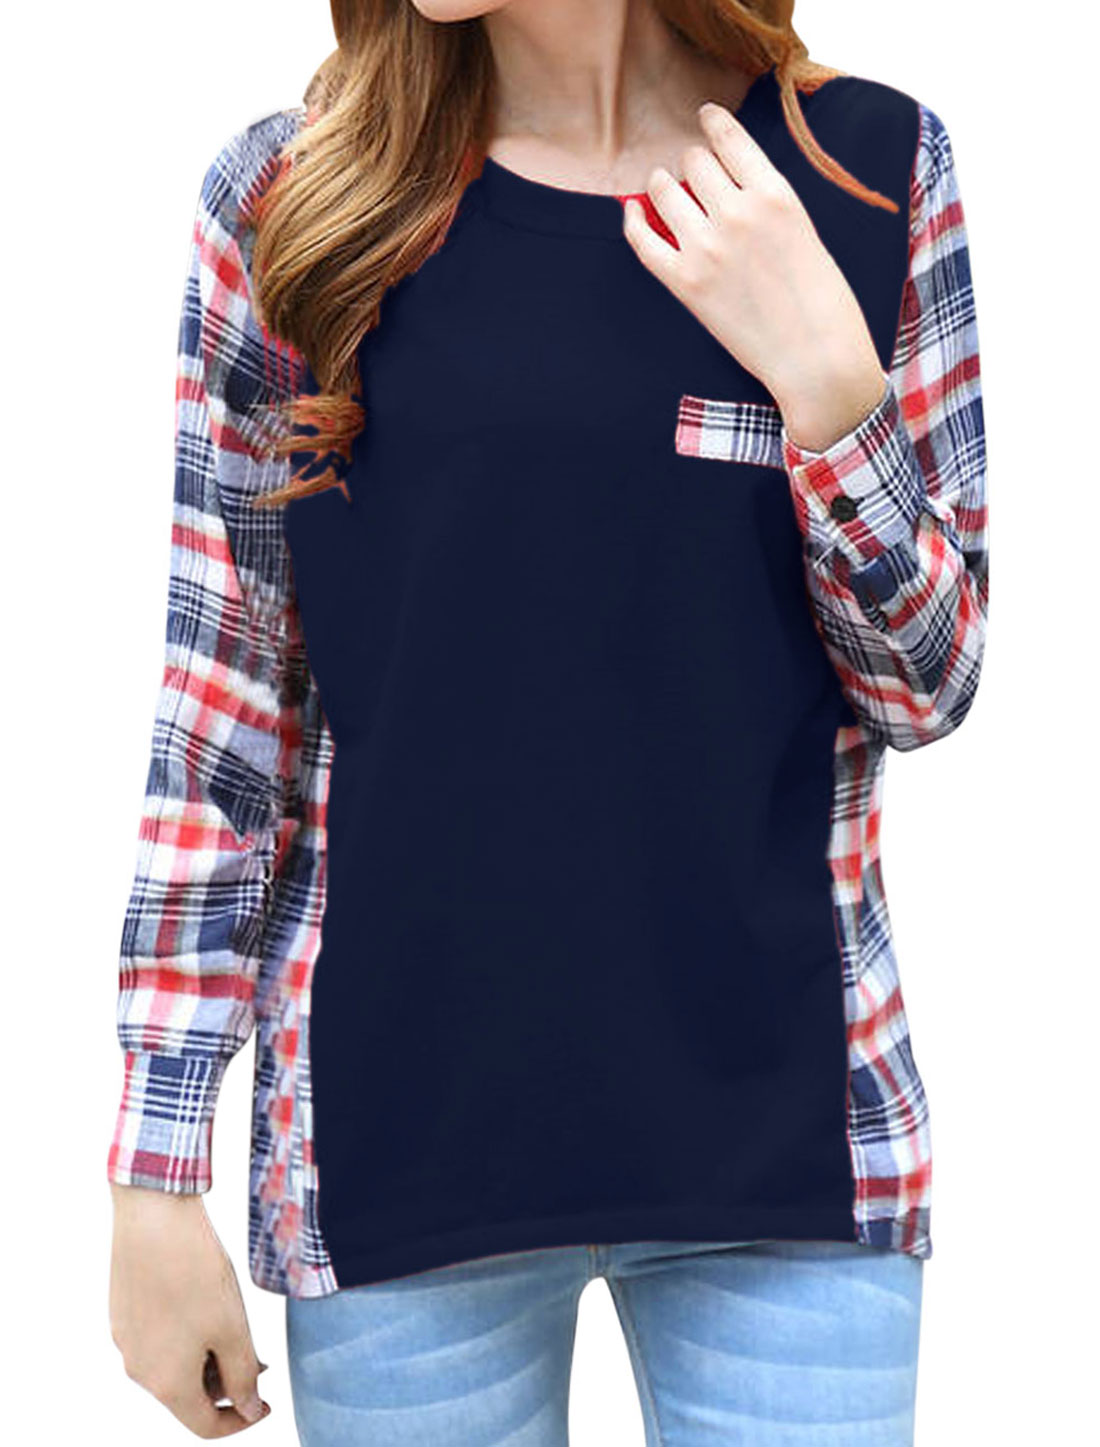 Women Splicing Stripes Plaids Pattern Slipover Casual Top Navy Blue M